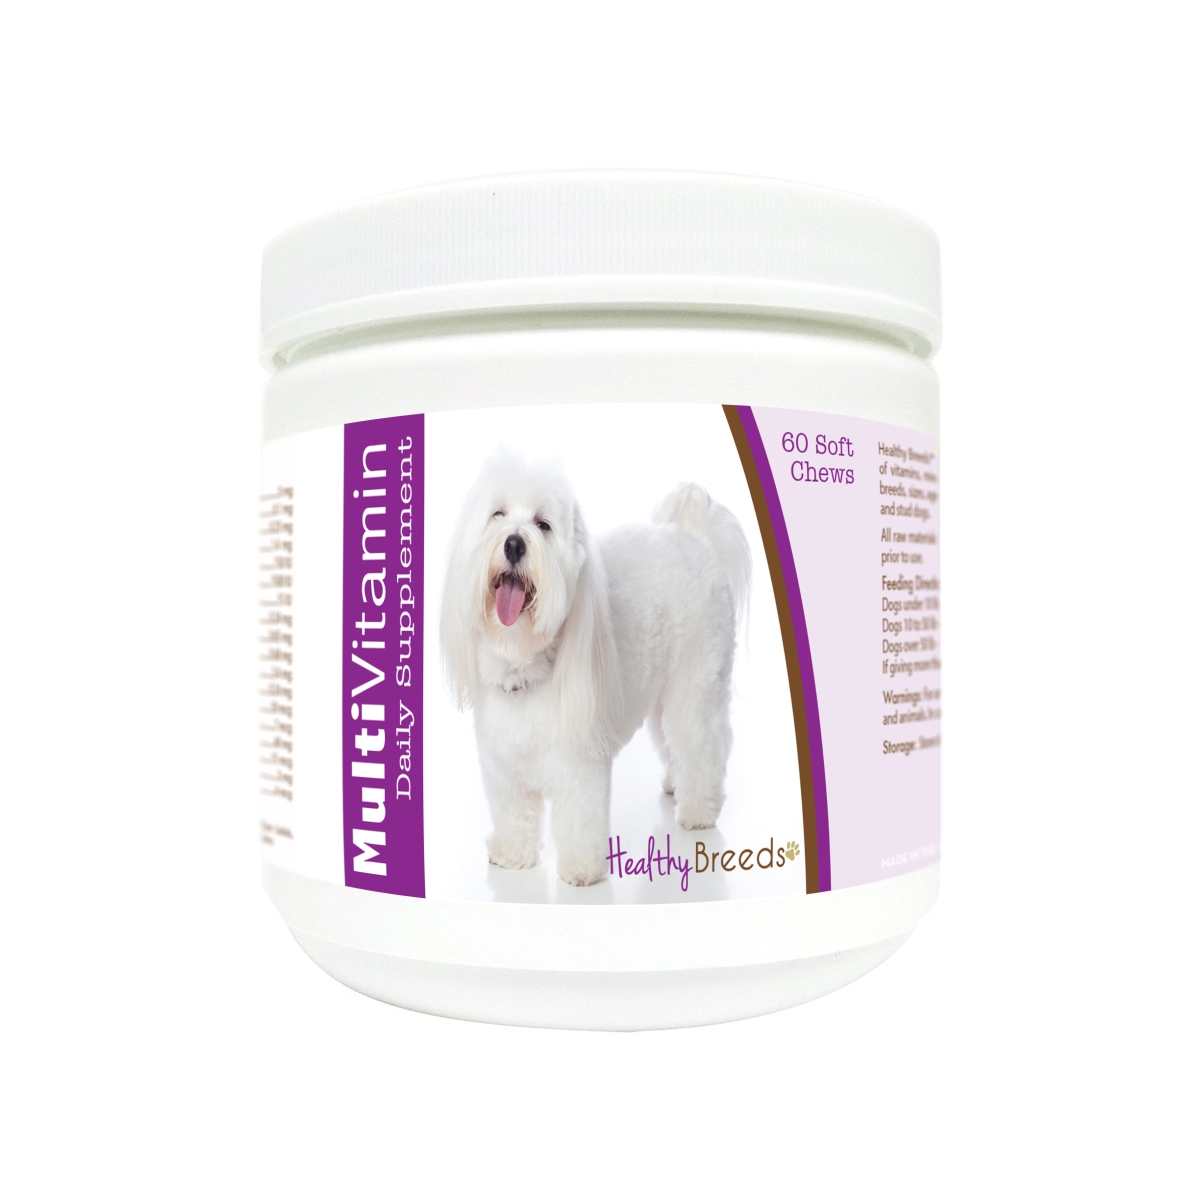 Healthy Breeds 840235176732 Coton de Tulear Multi-Vitamin Soft Chews - 60 Count